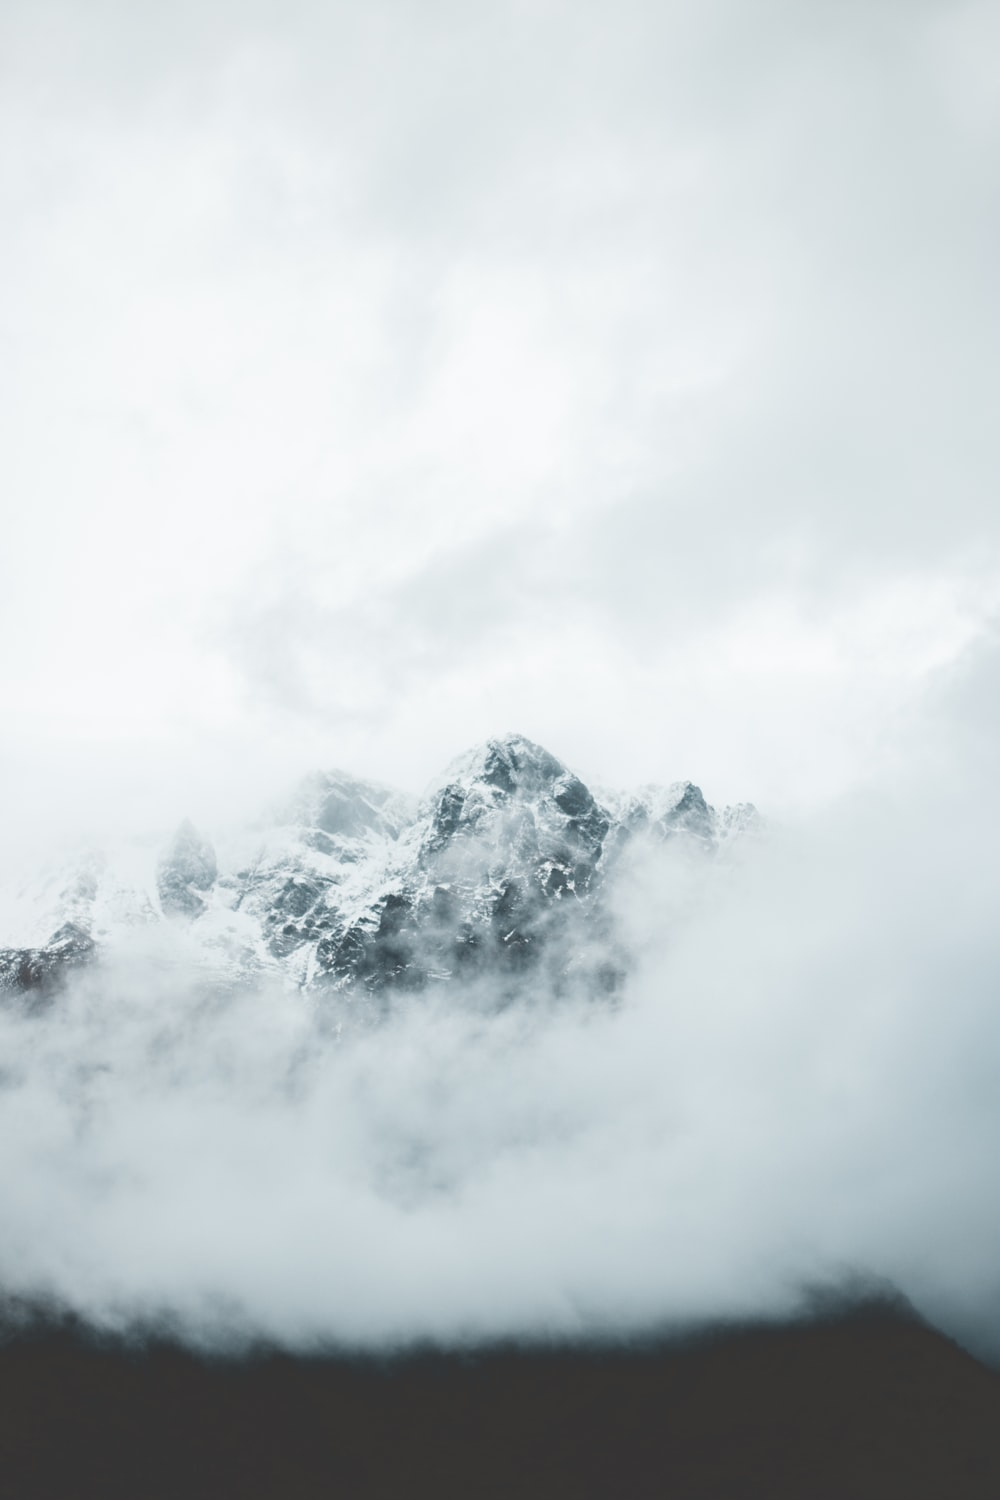 white mountain covered in clouds